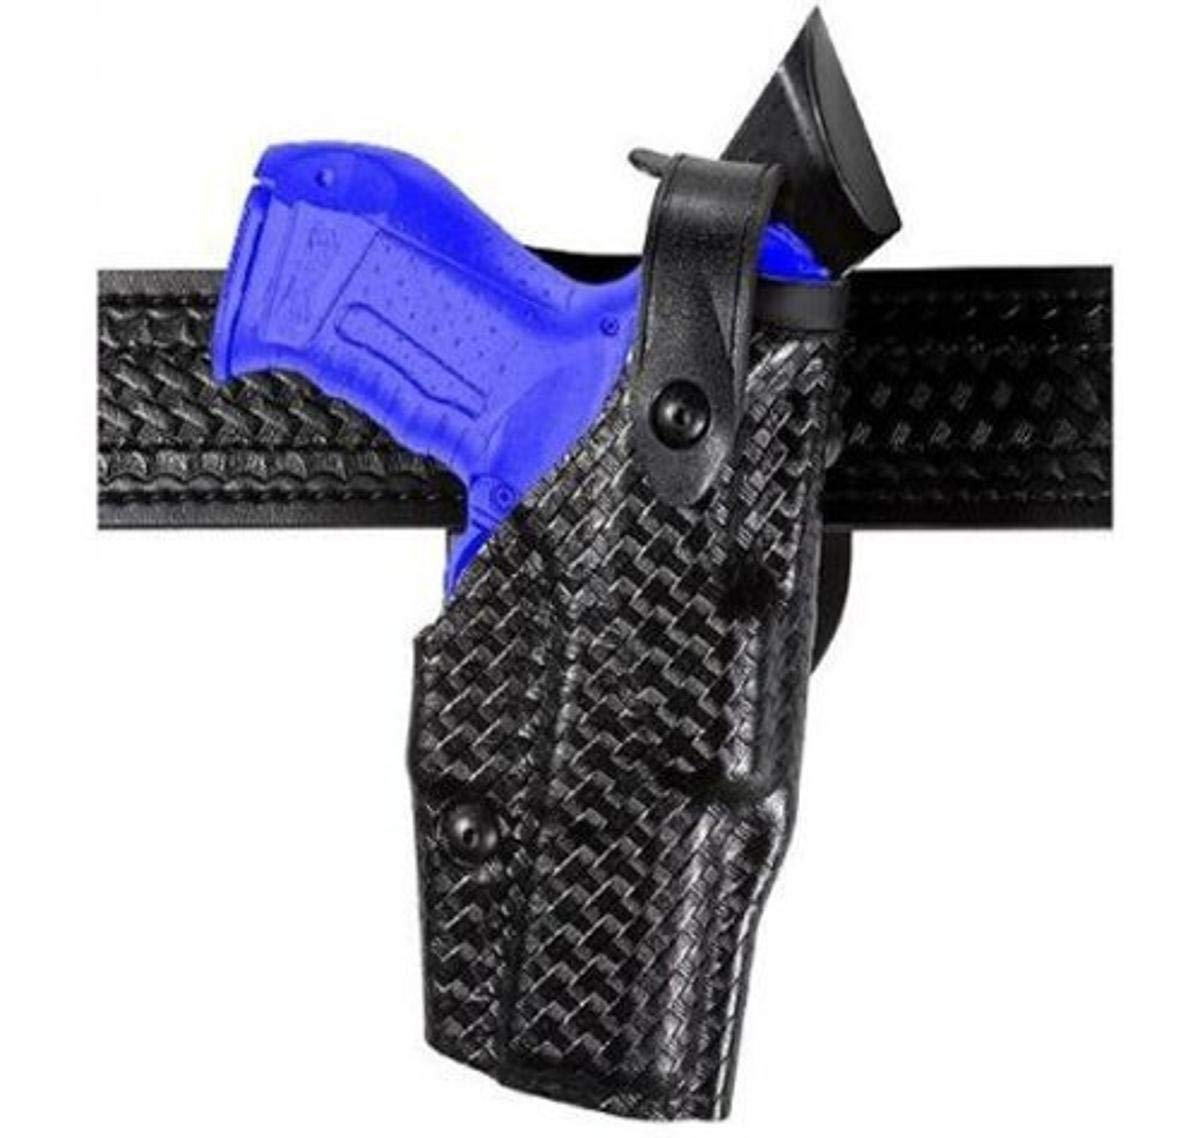 Safariland, 6360, SLS/ALS, Level 3 Retention Duty Holster